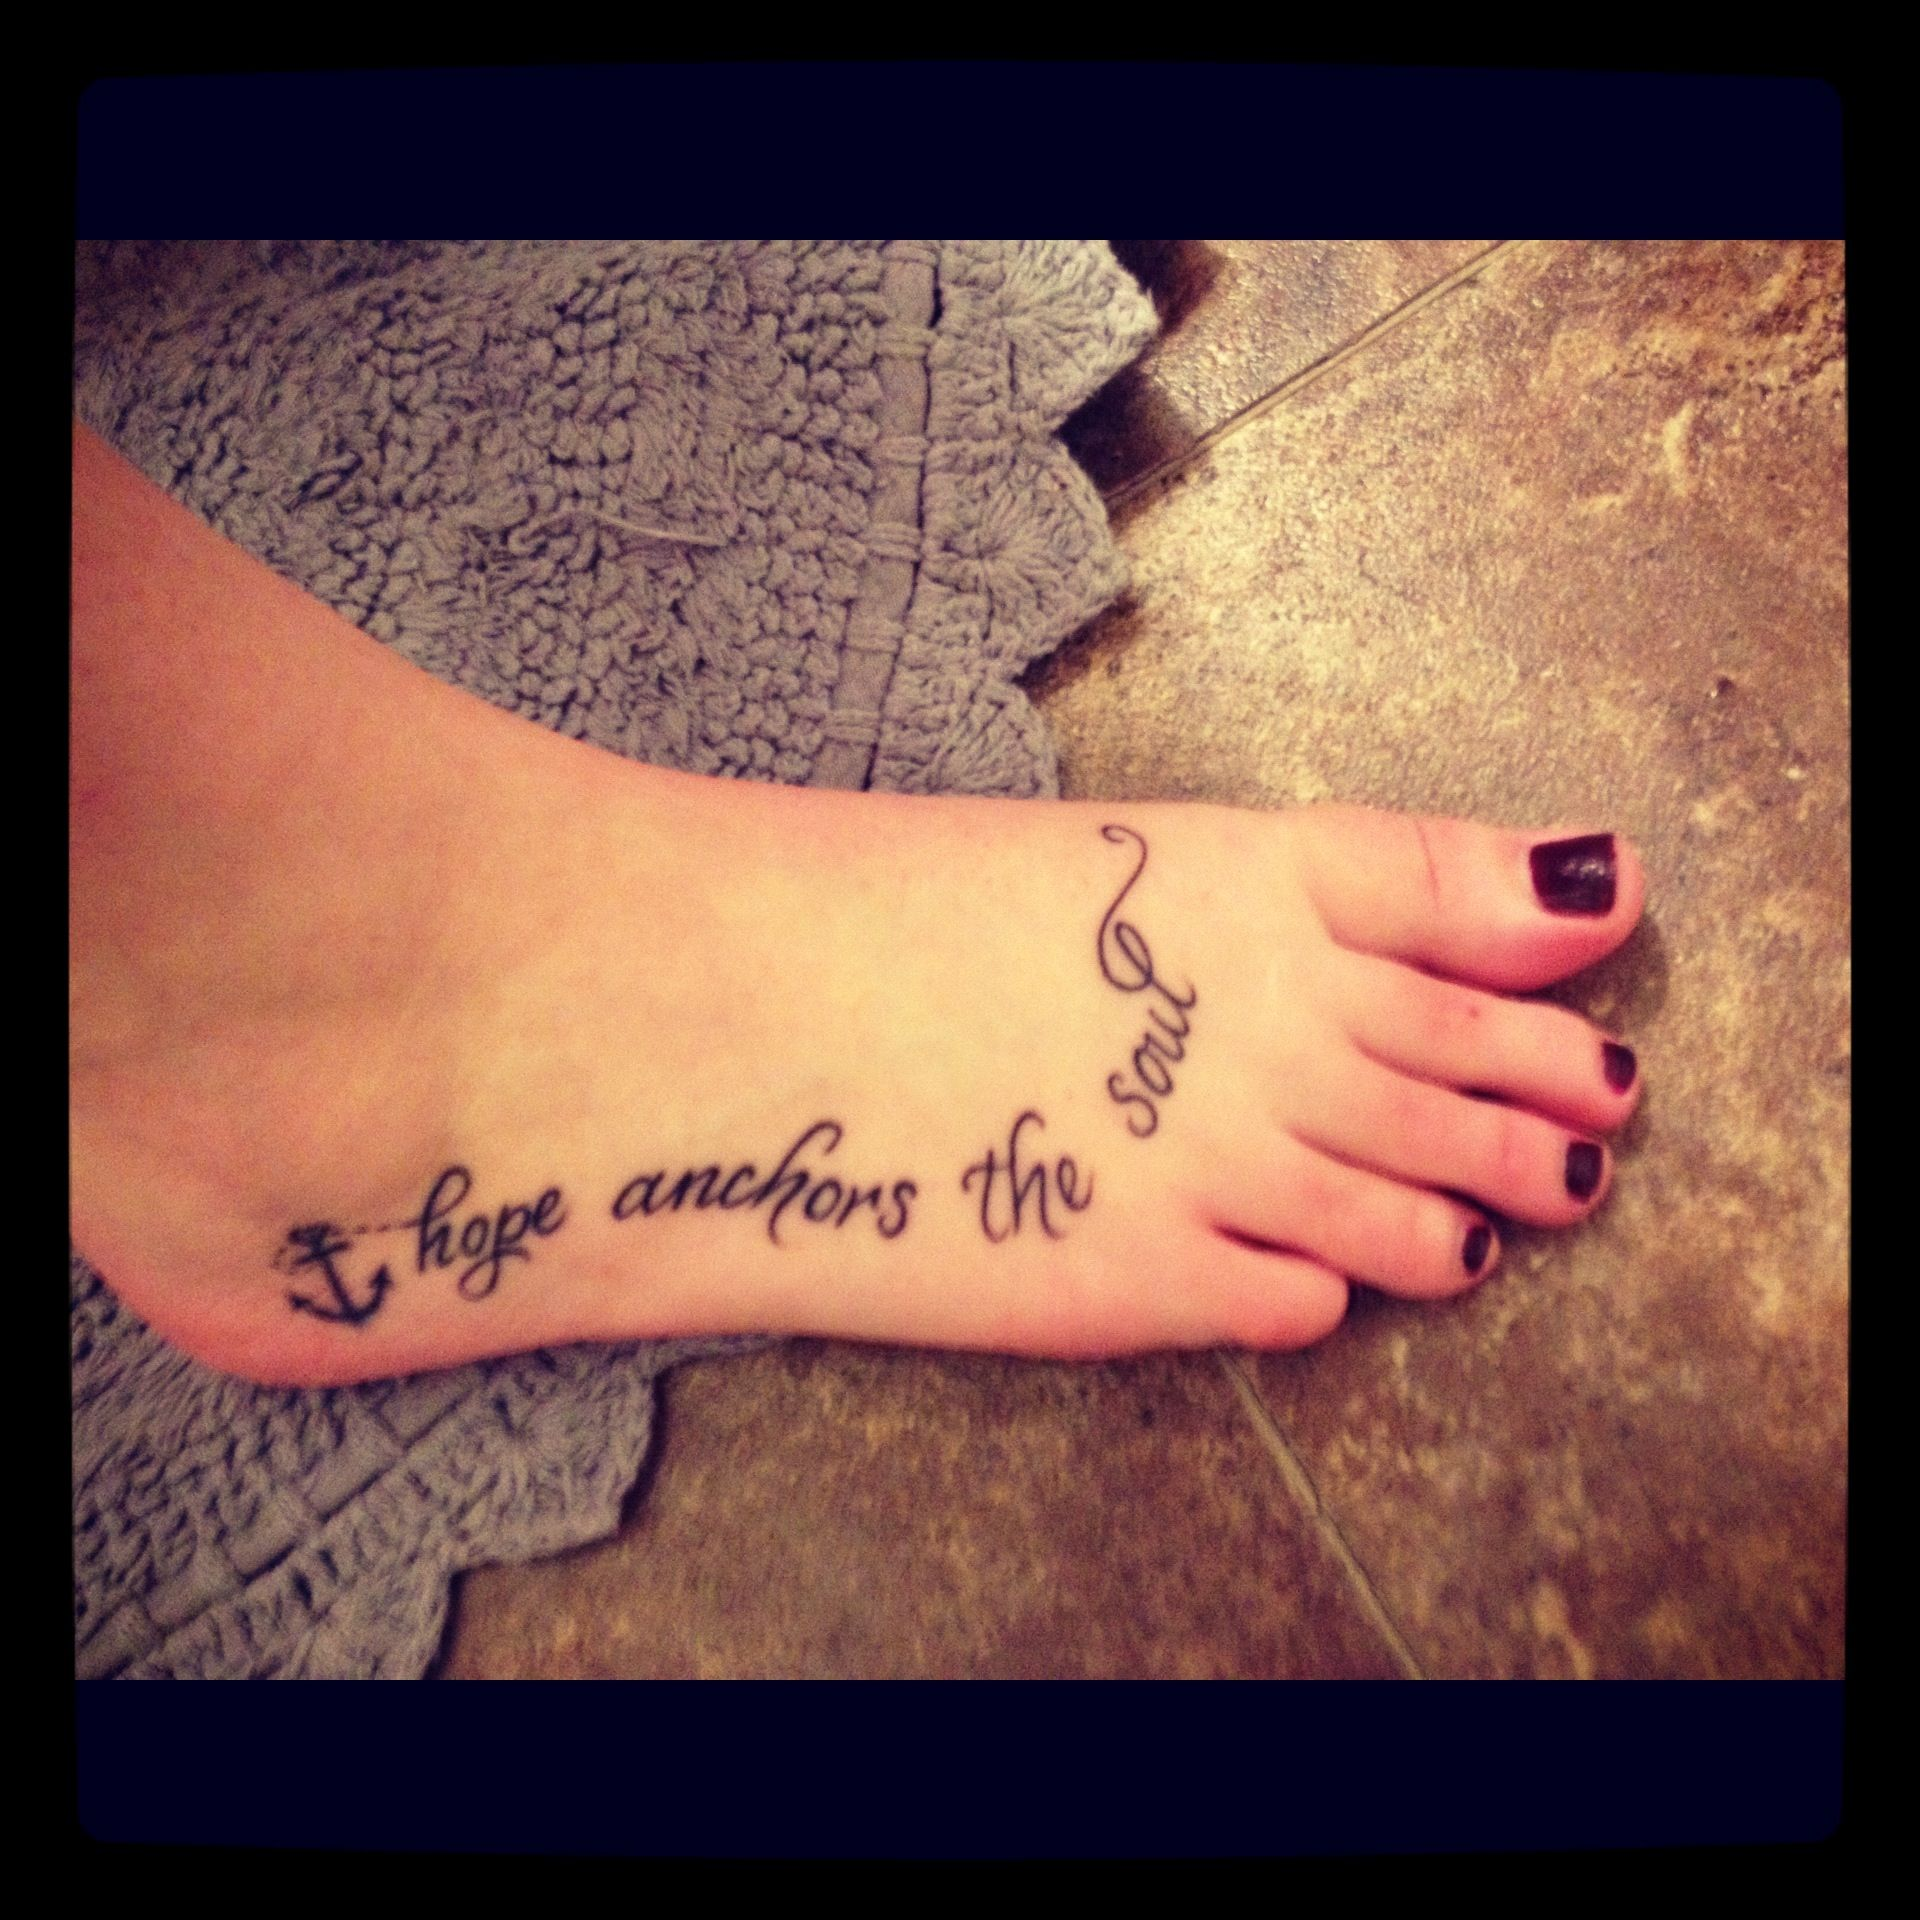 Hope anchors the soul actually really like this tattoo for Hope anchors the soul tattoo